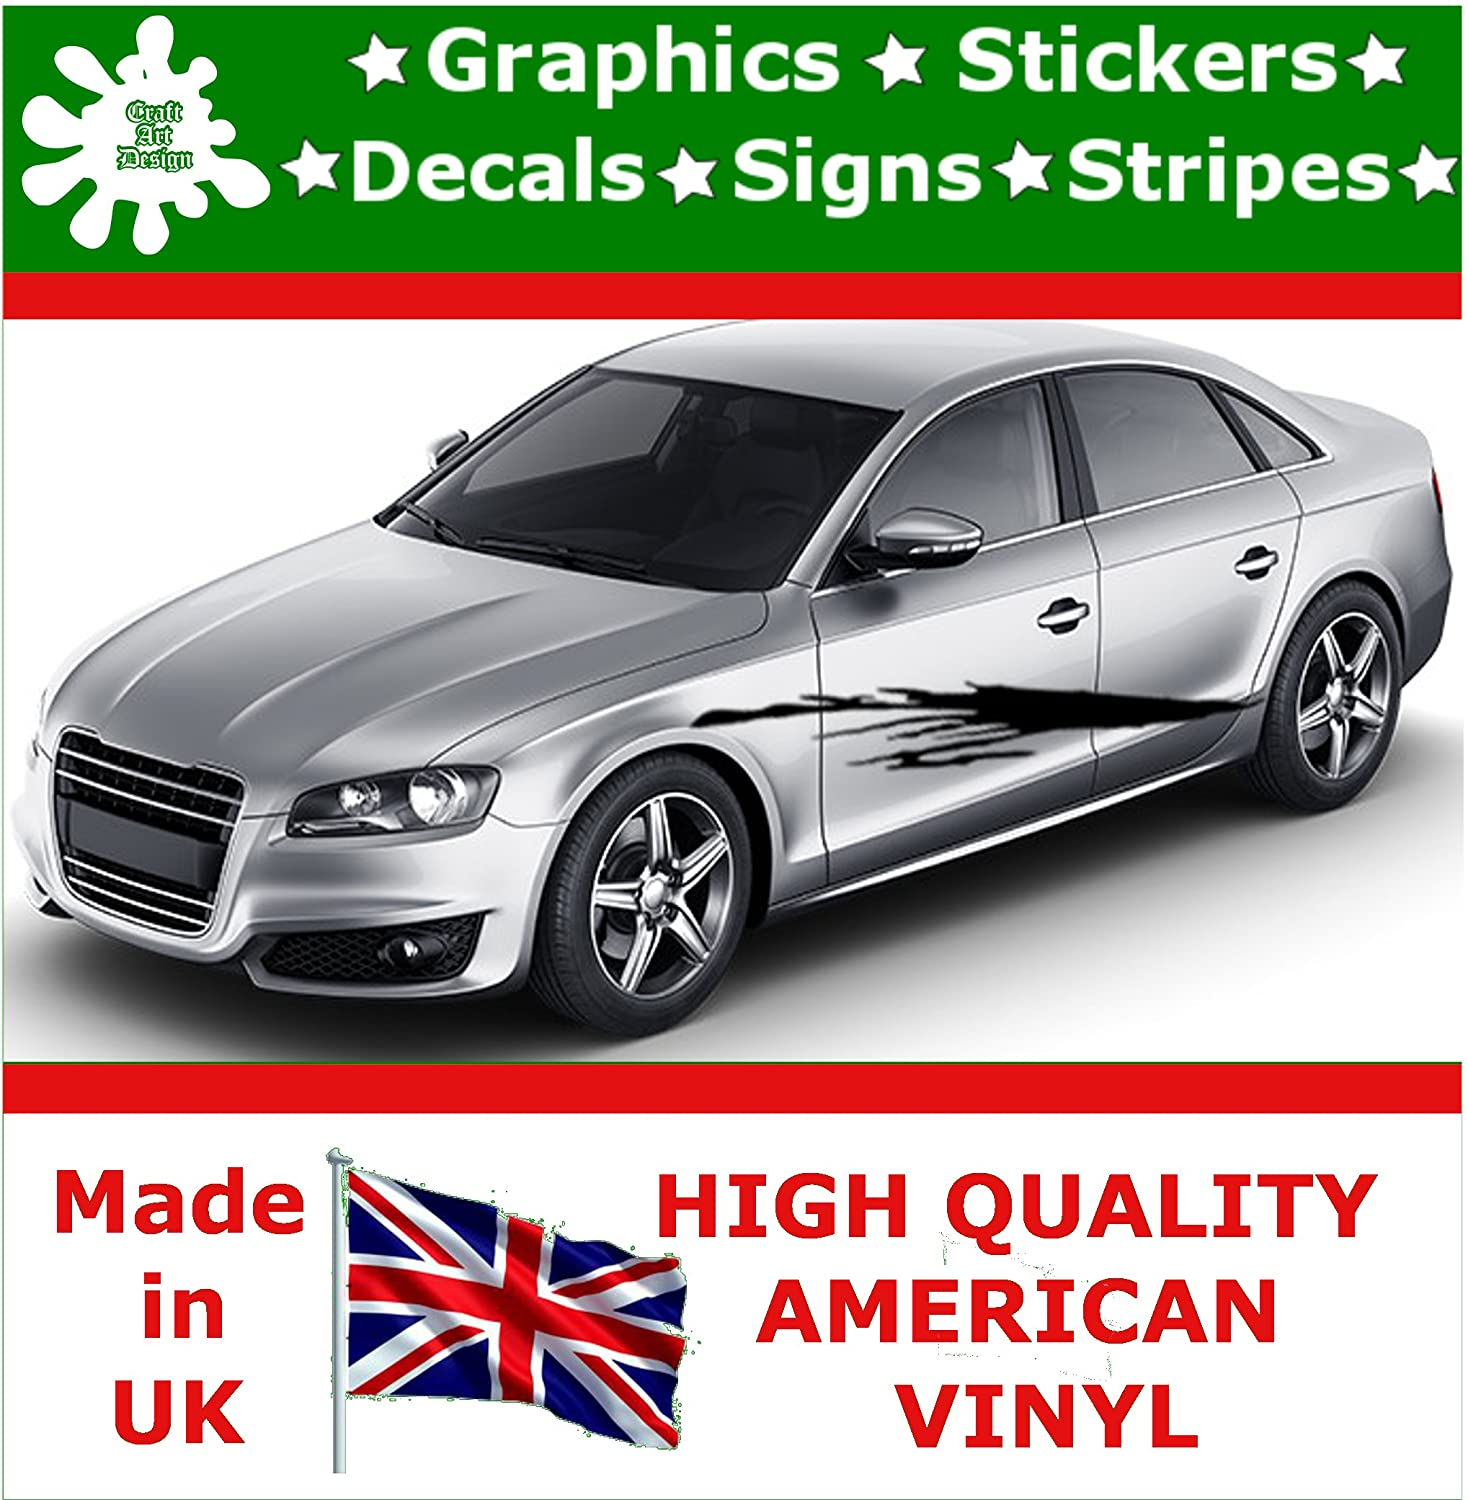 Craft art design car stickers 10 inch side stripes stickers graphics vinyl decal decals racing sticker stripe graphic body race decal self adhesive